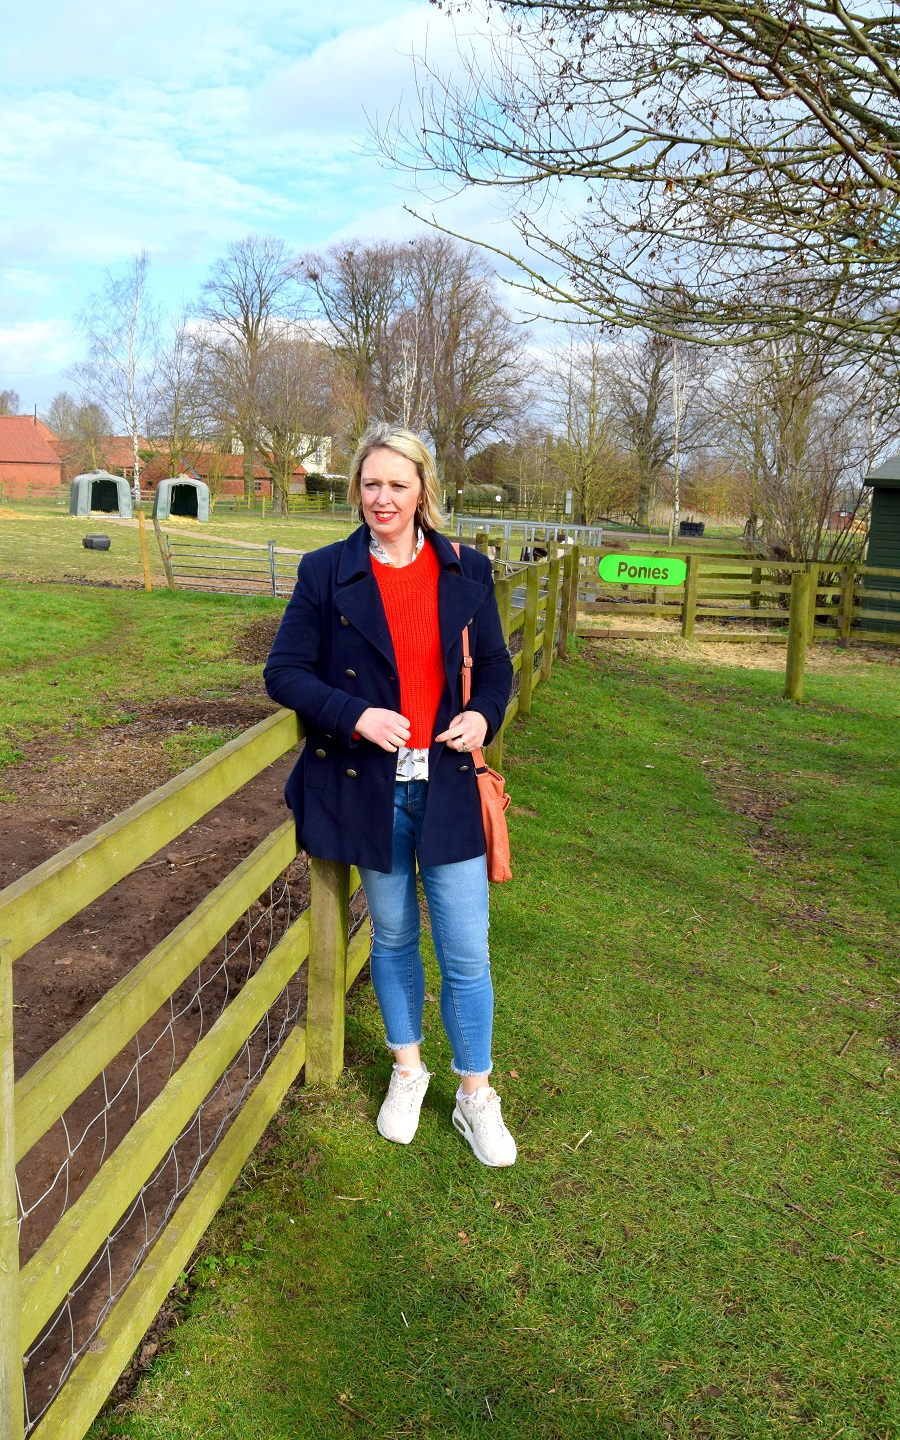 What I Wore To White Post Farm in Nottingham